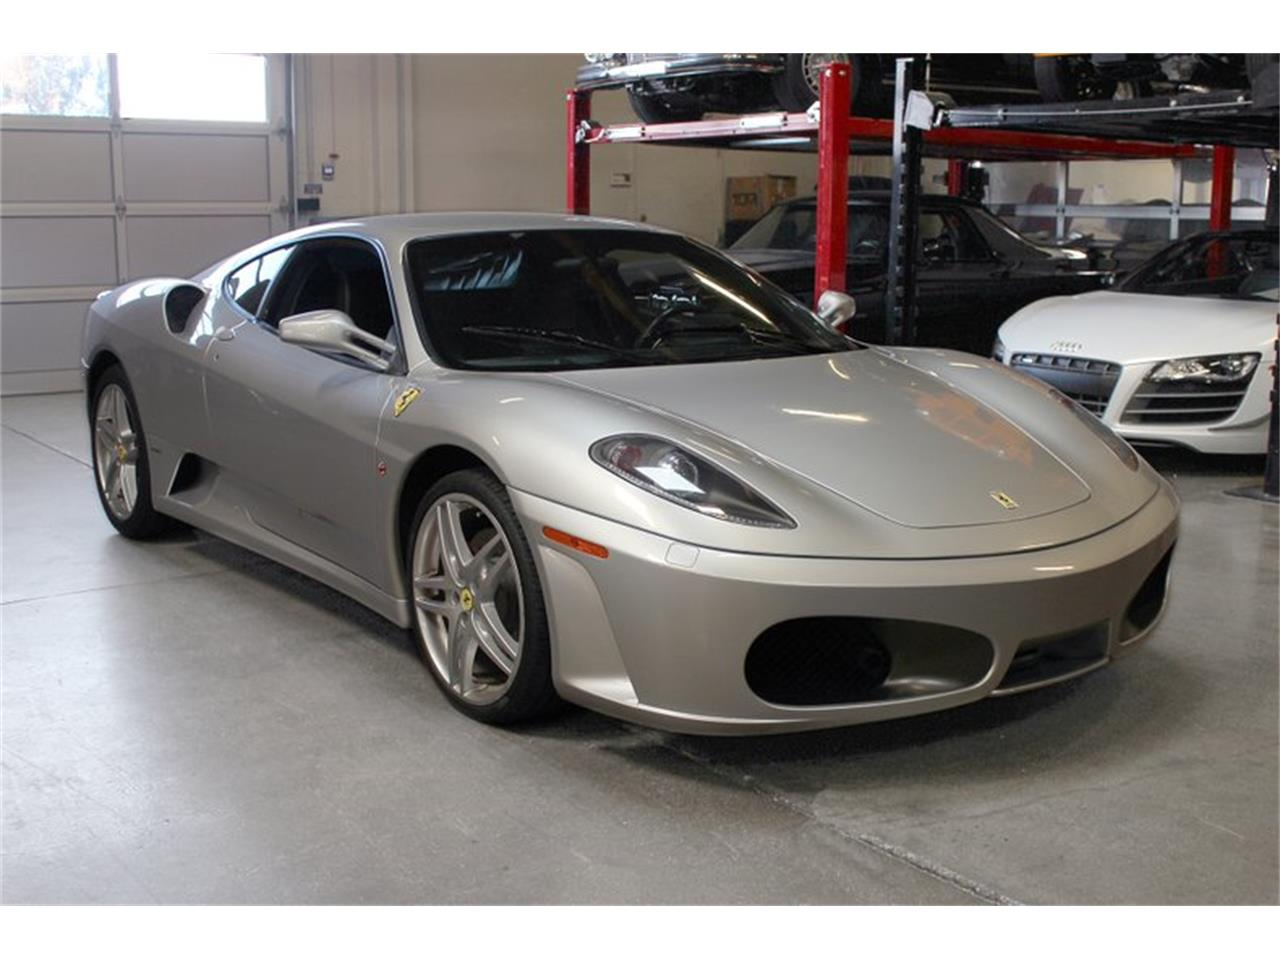 2005 Ferrari F430 for sale in San Carlos, CA